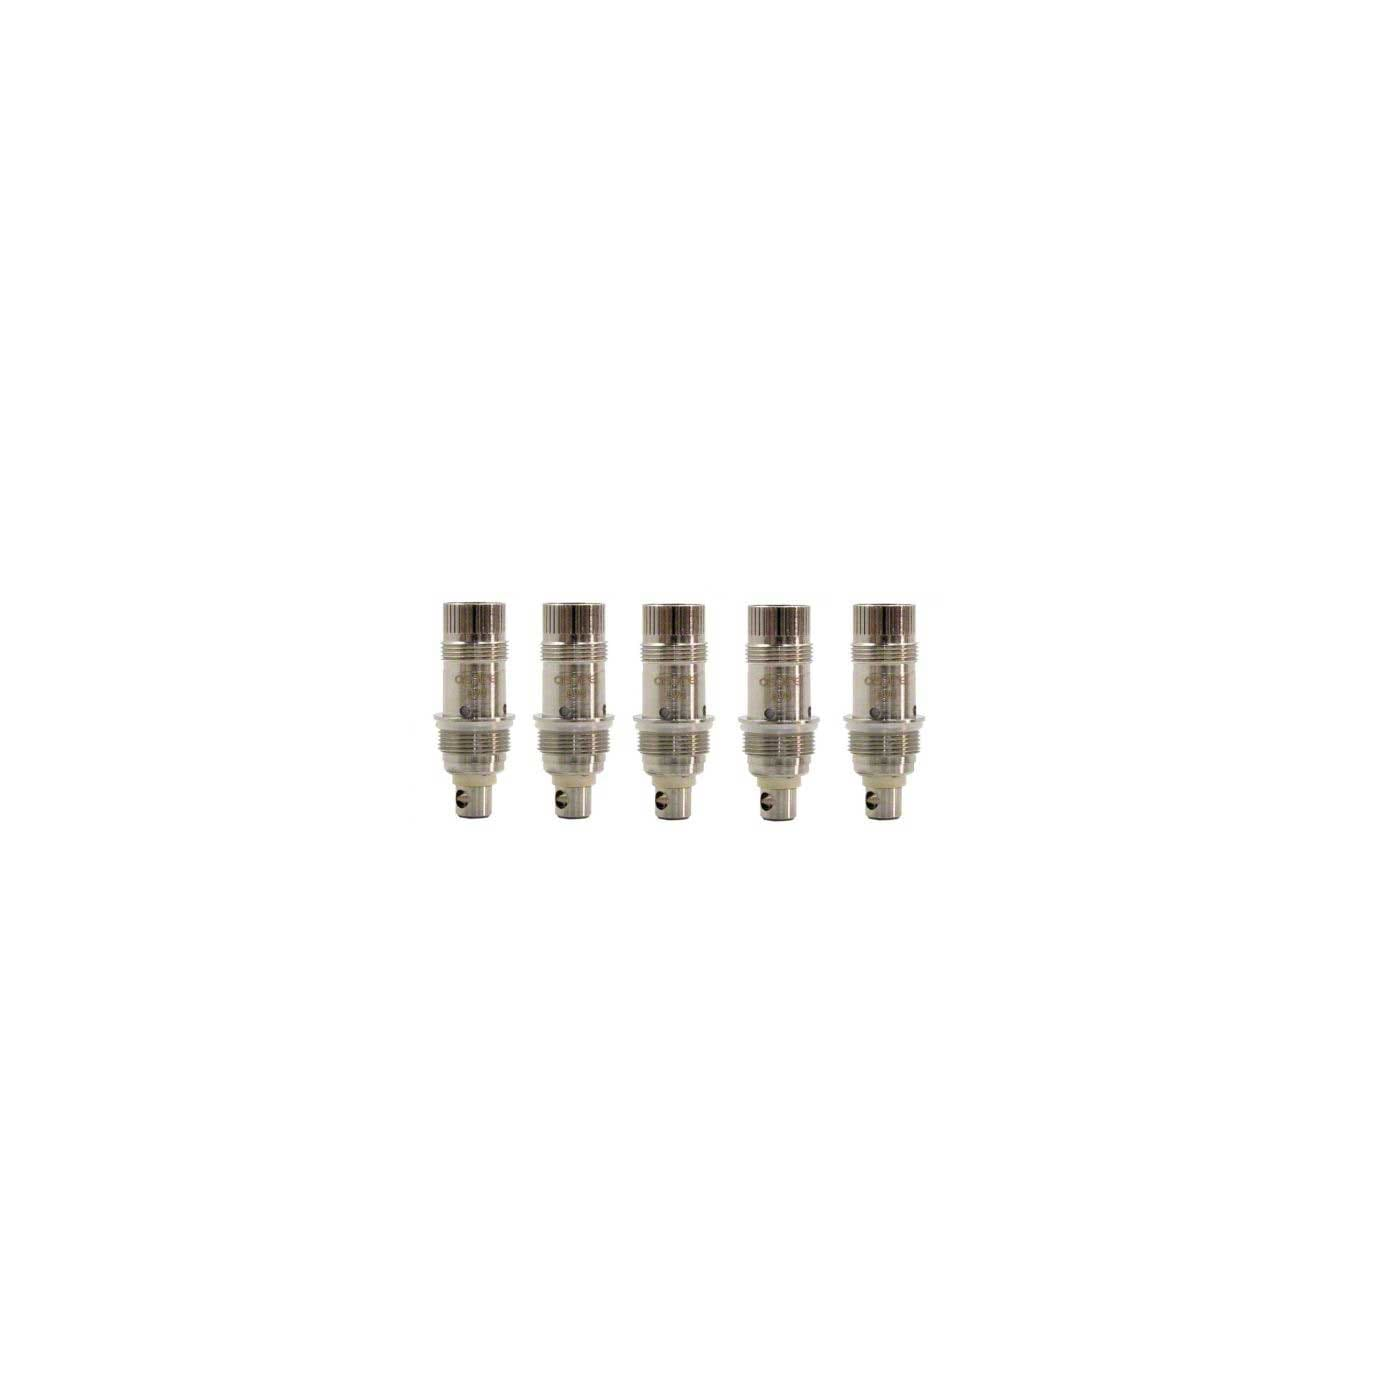 Aspire Nautilus BVC Replacement coils - 5 Pack